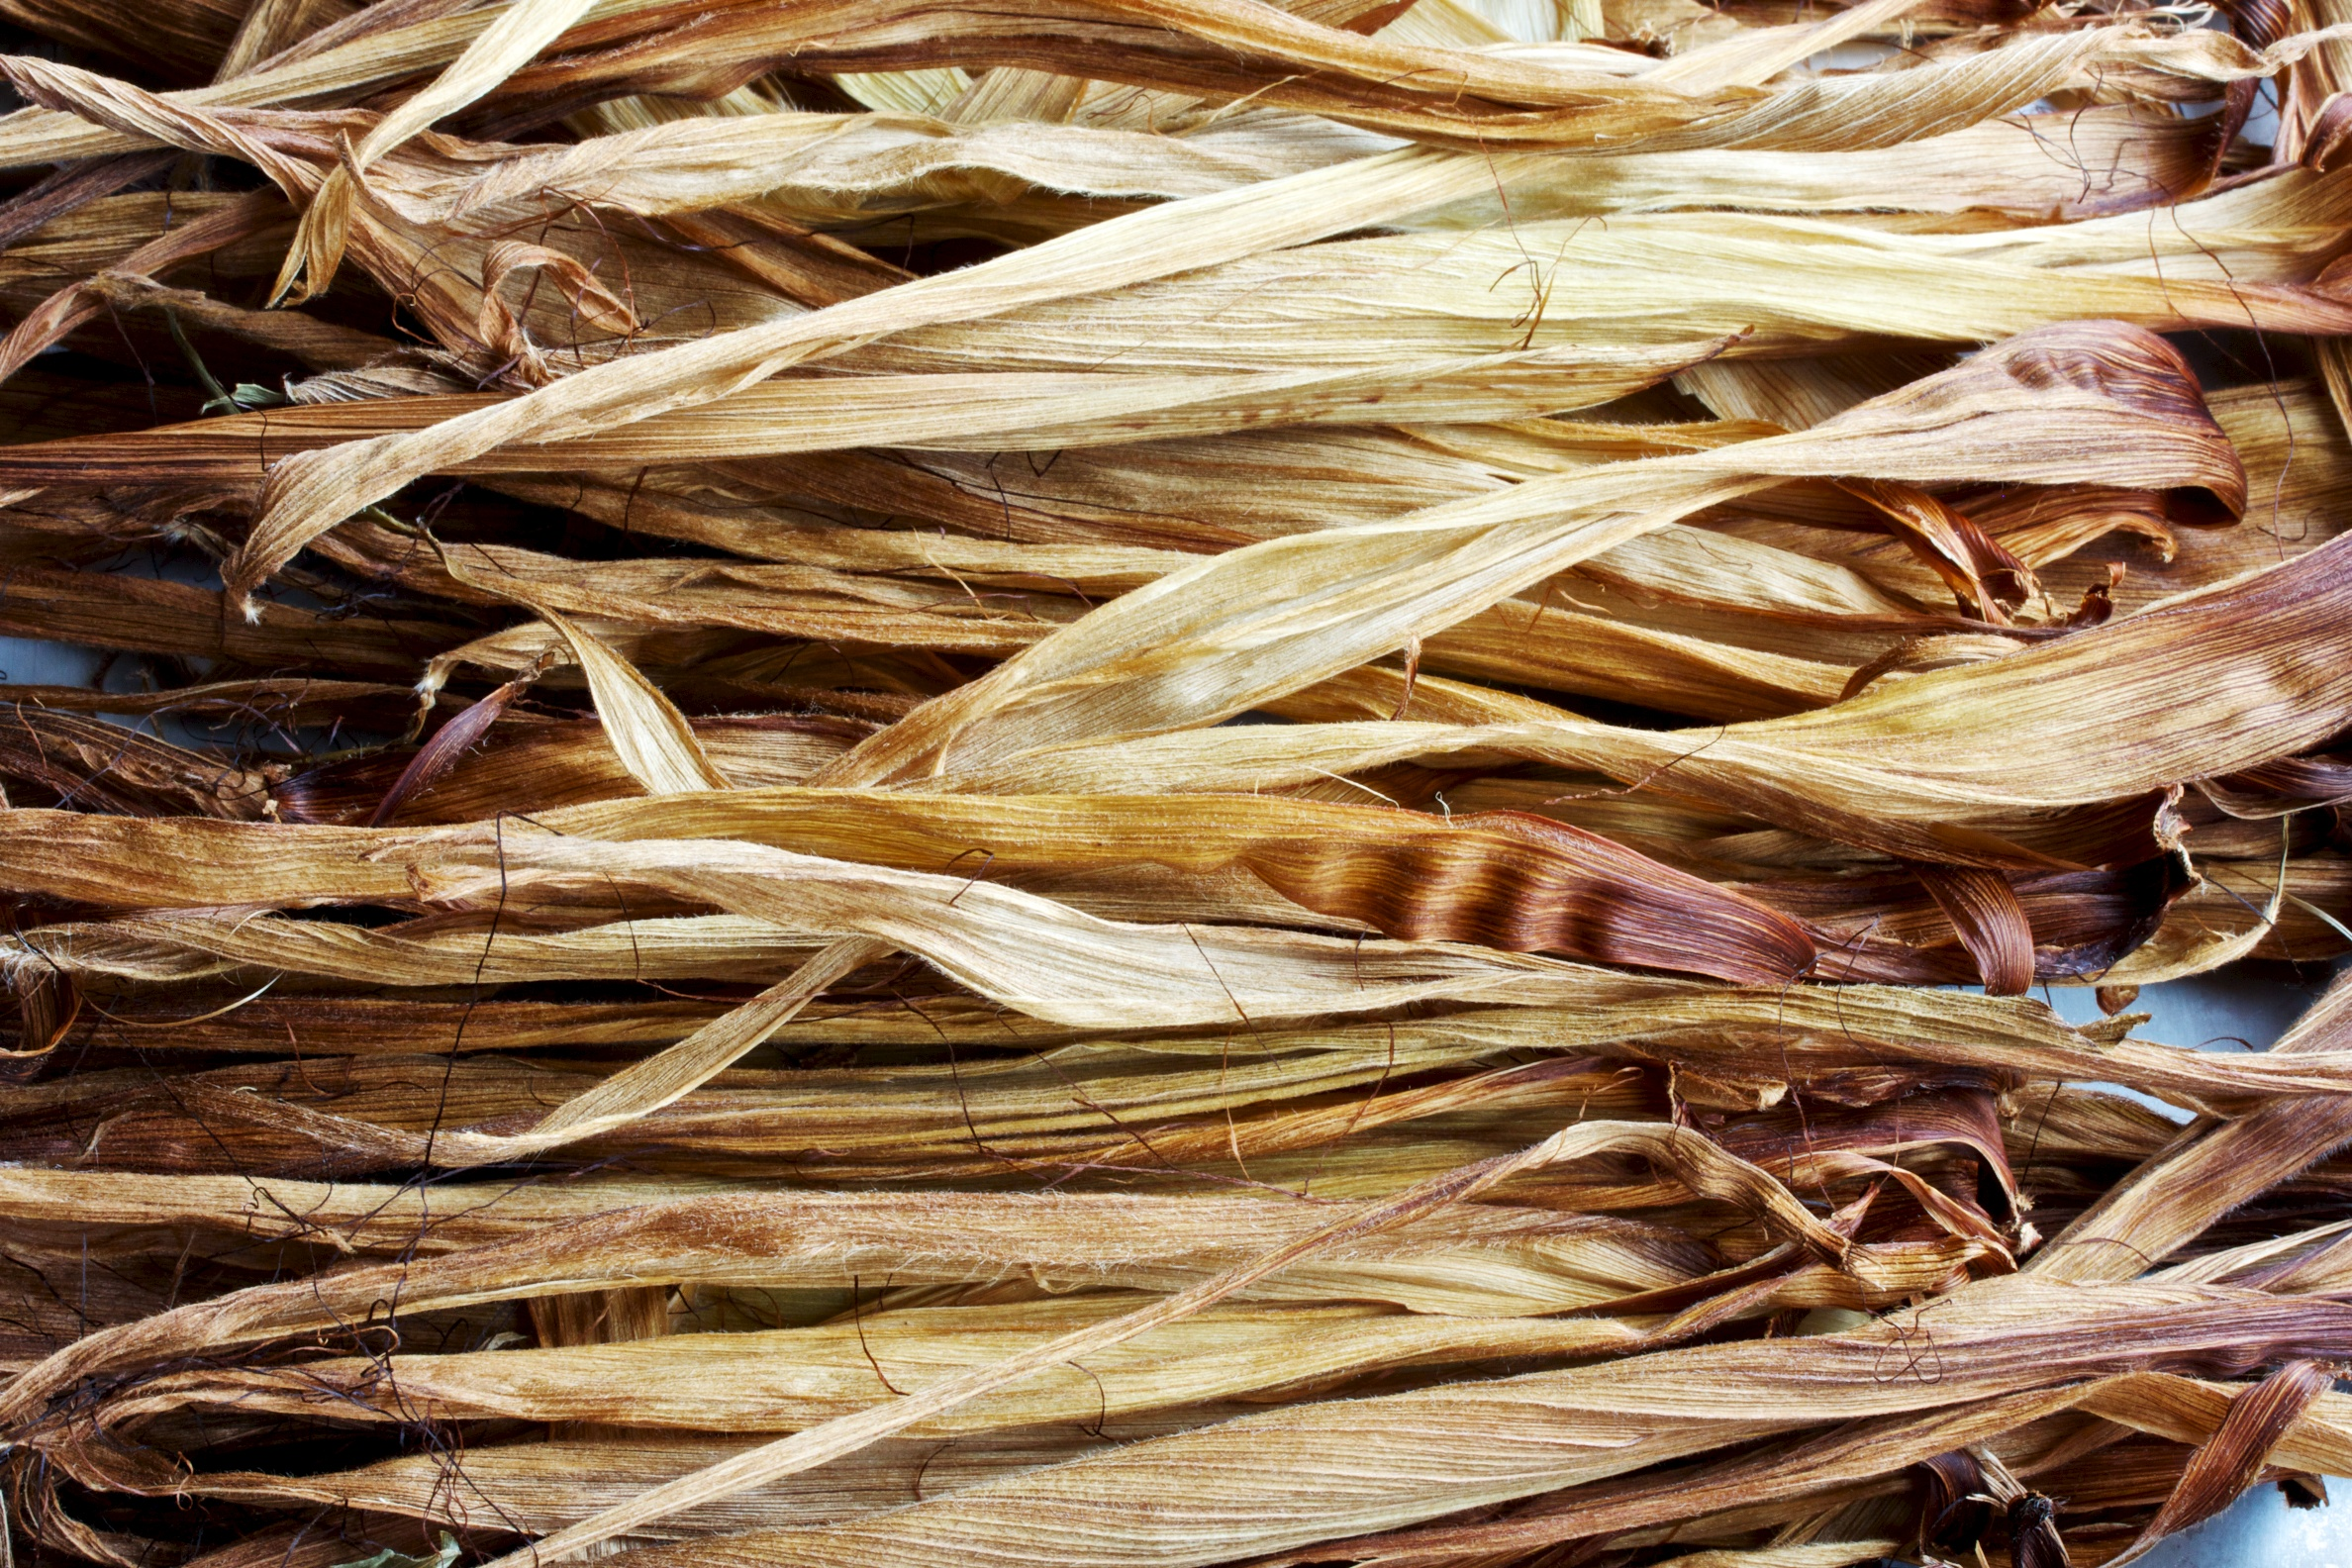 IDEAS IN FOOD: Roasted Corn Husks